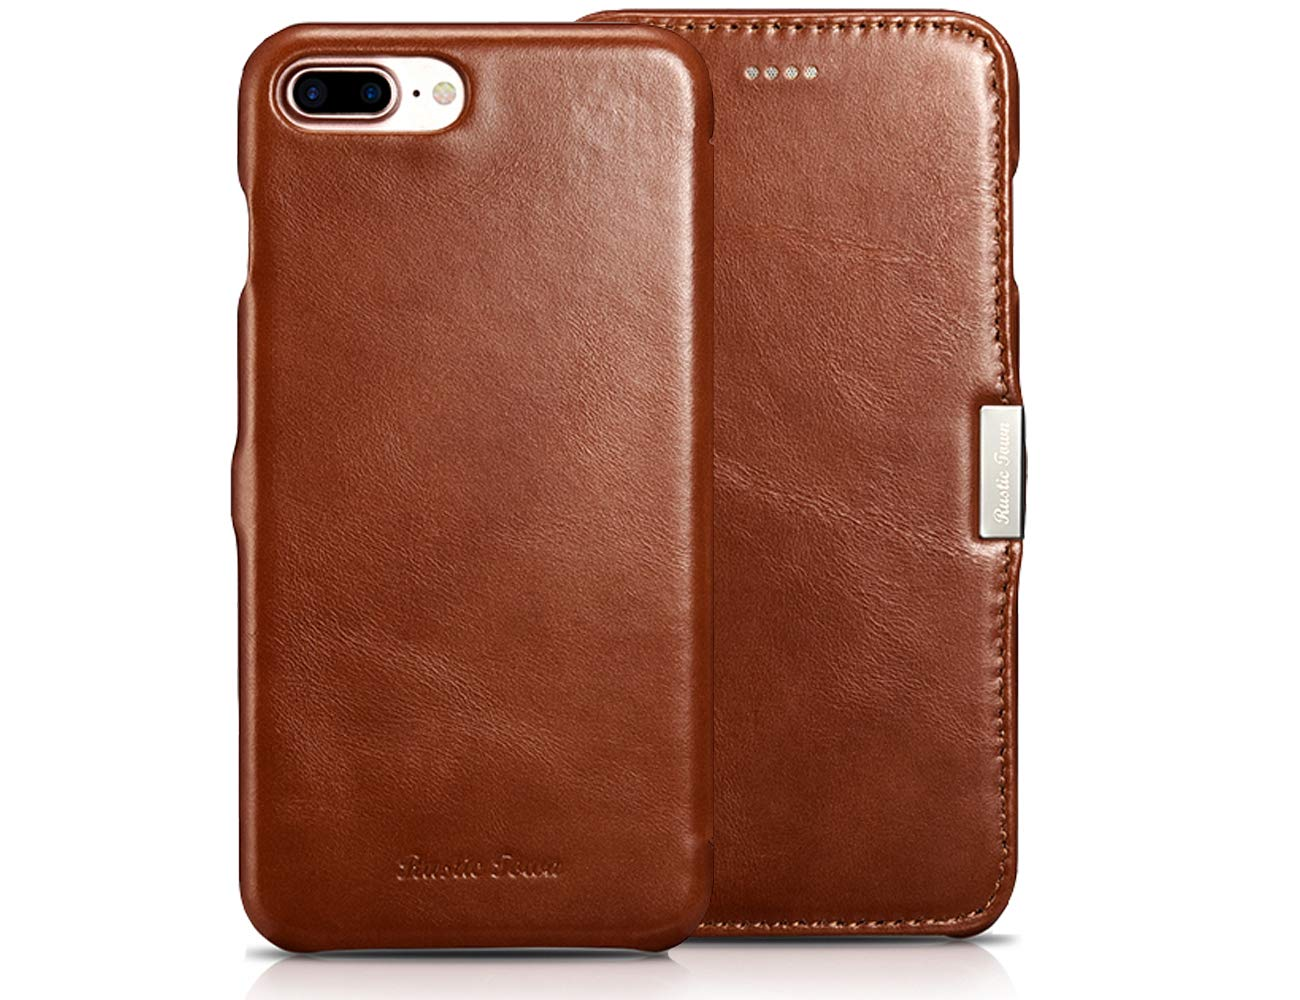 best service c9246 61638 iPhone 8 Plus Leather Case - Genuine Leather iPhone 7 Plus Folding Flip  Case and Flap Closure - Protective Cover for Apple iPhone 8 Plus (2017) /  ...